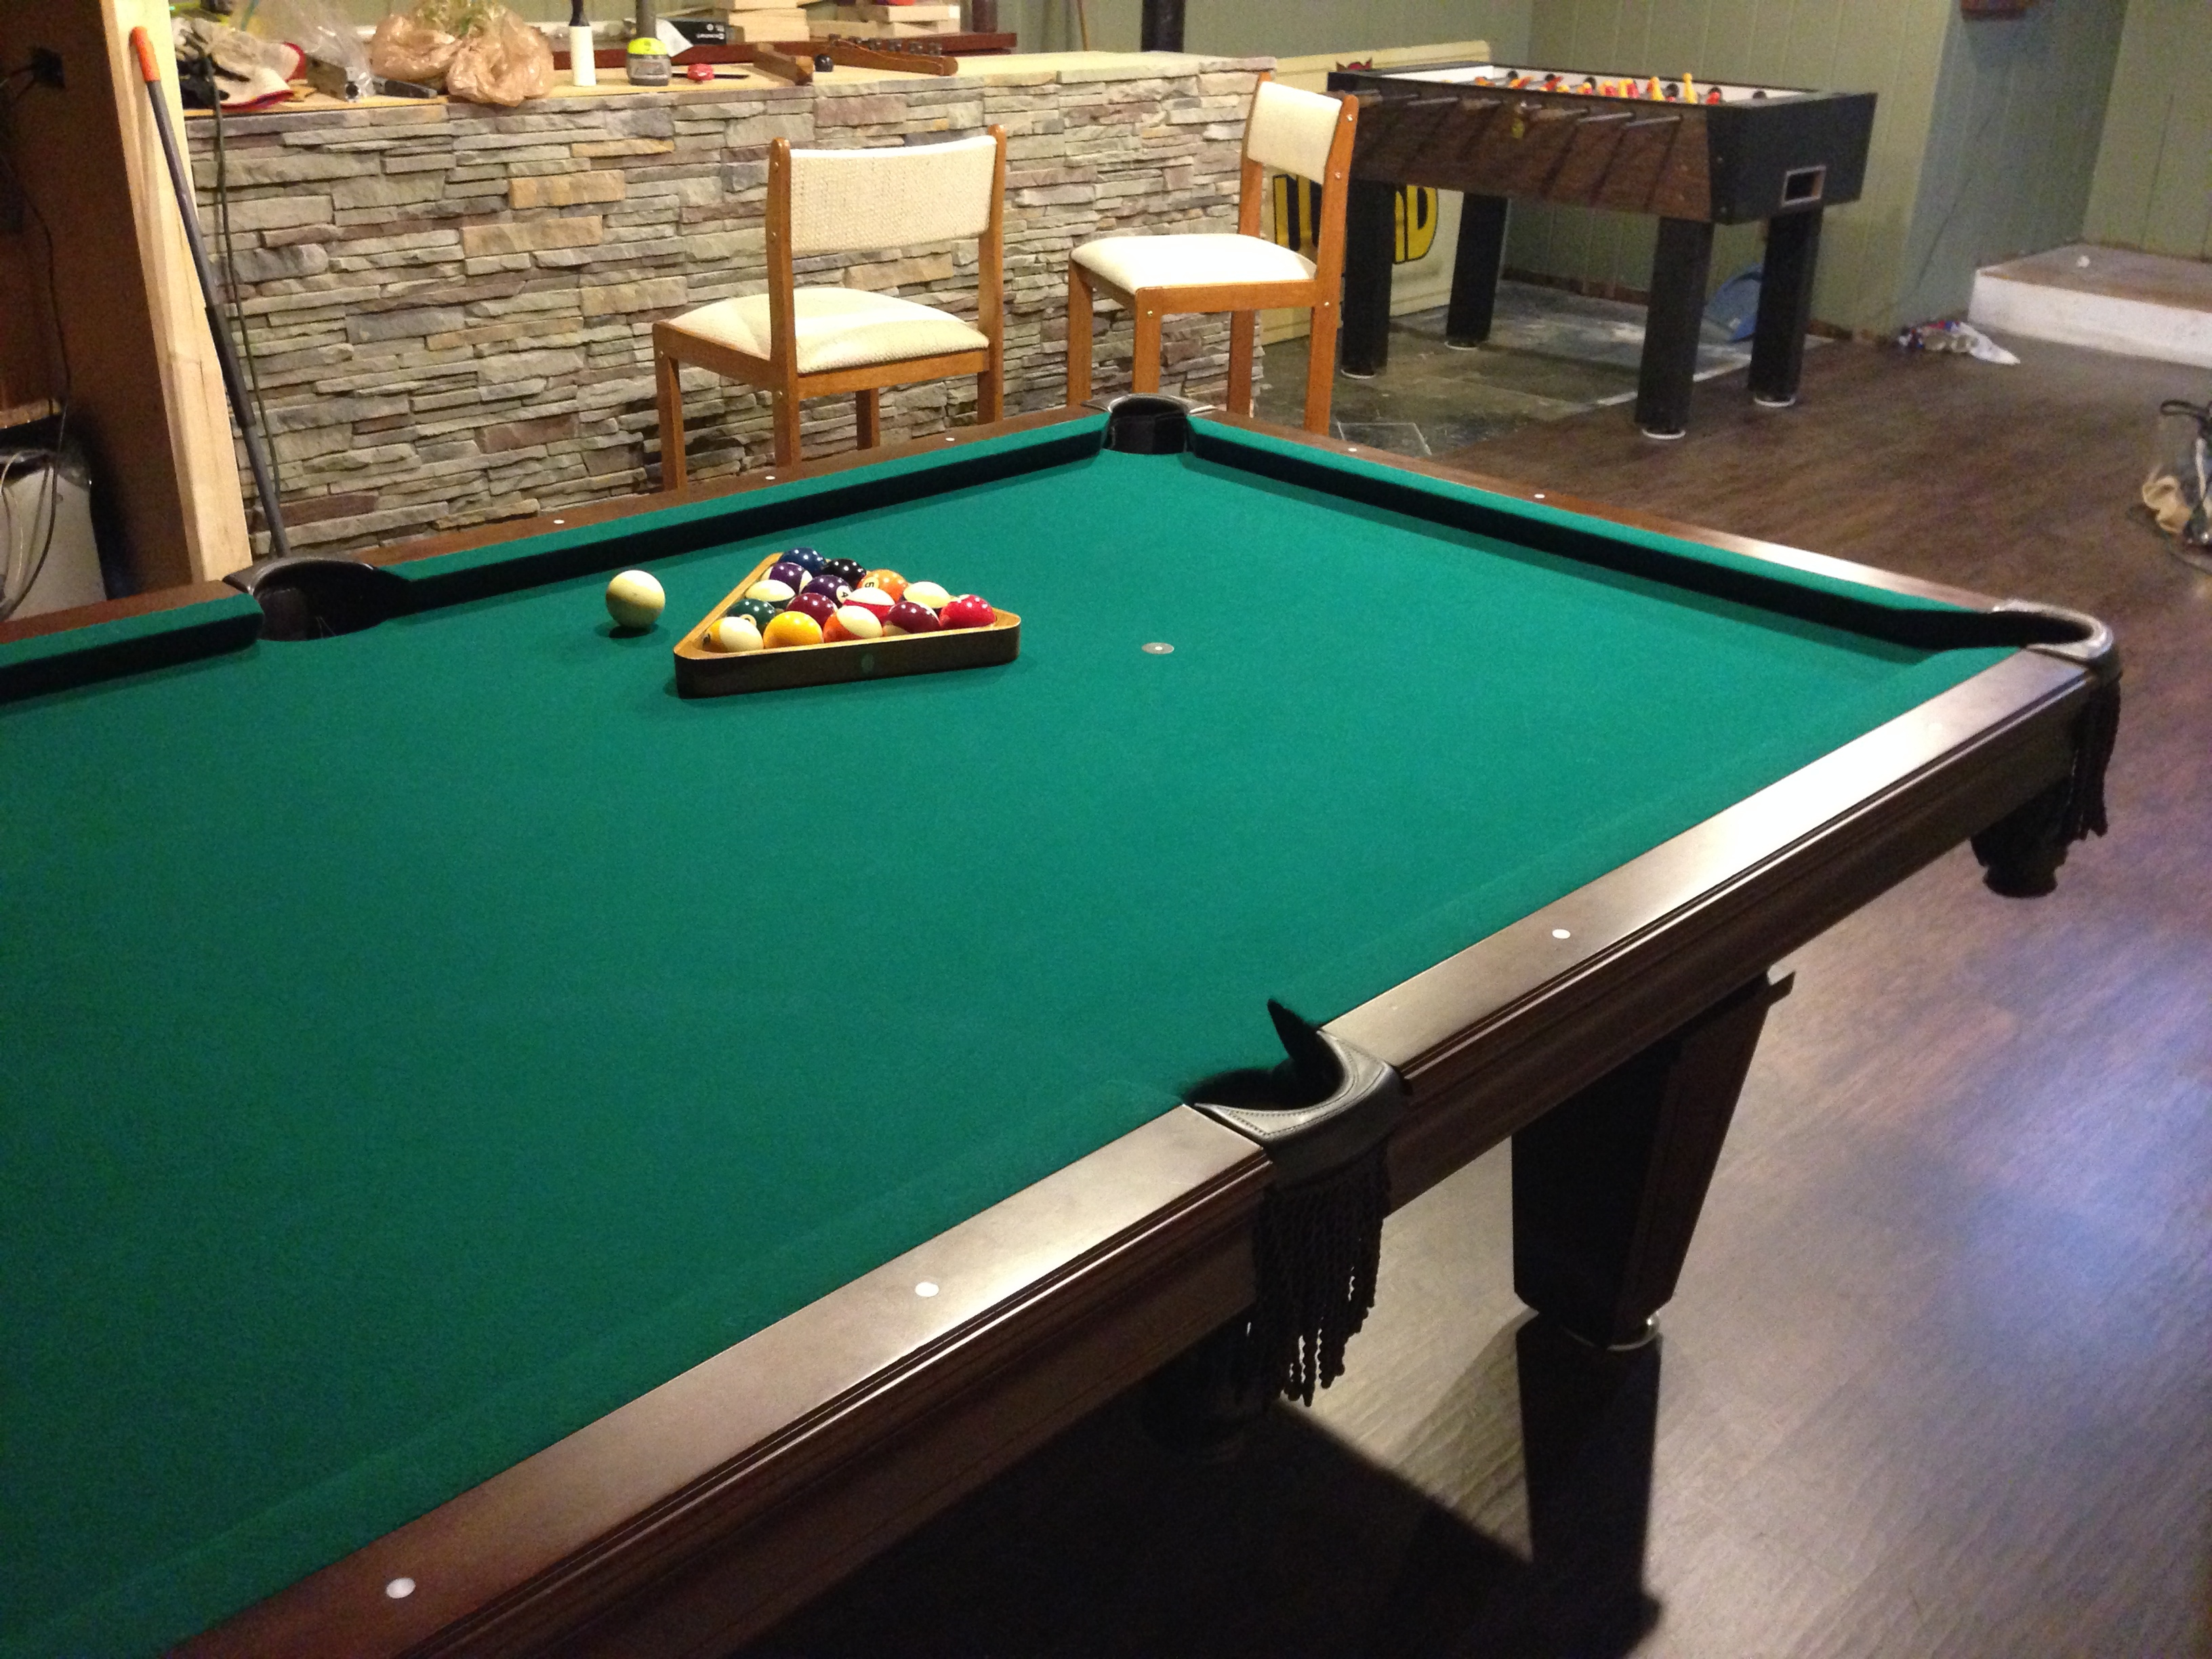 how to jon pohlman rh jonpohlman com refelt a pool table bristol refelting a pool table cost